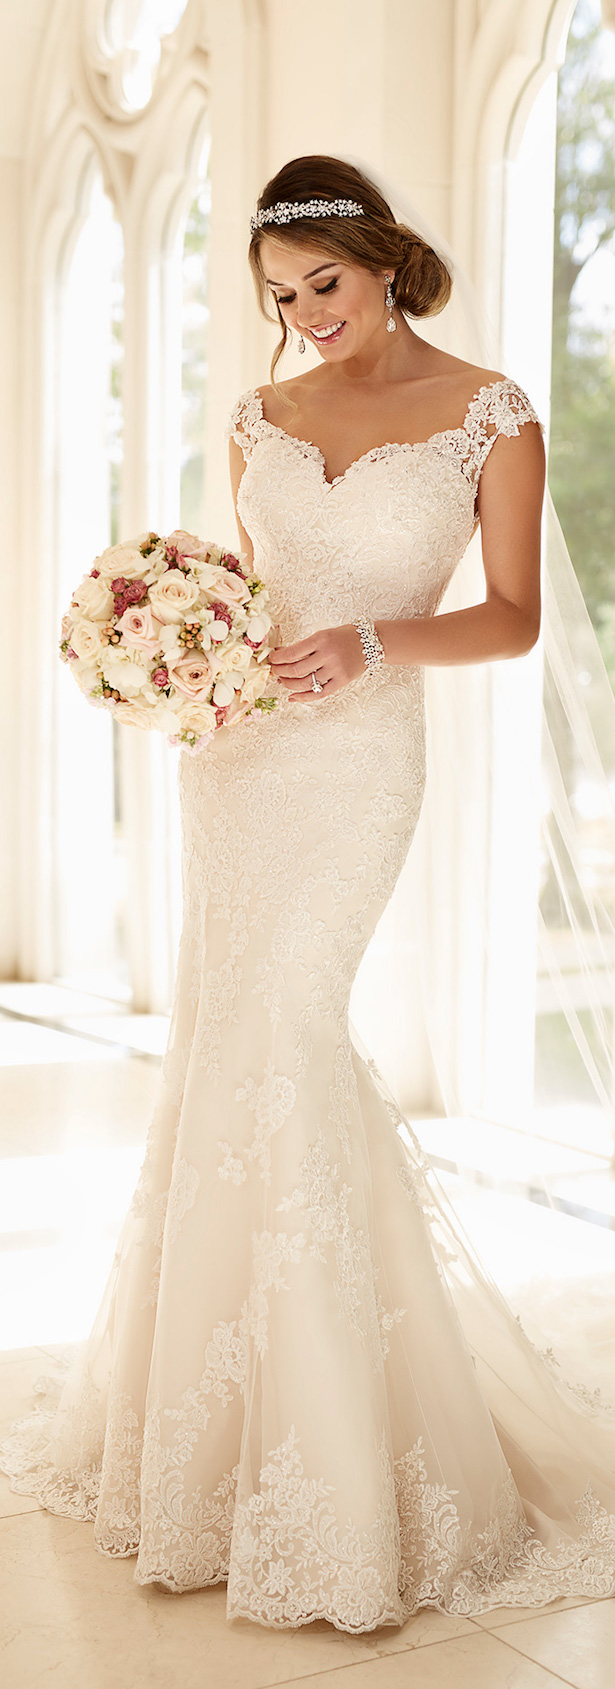 42fff8b865 Stella York Spring 2016 Bridal Collection - Belle The Magazine